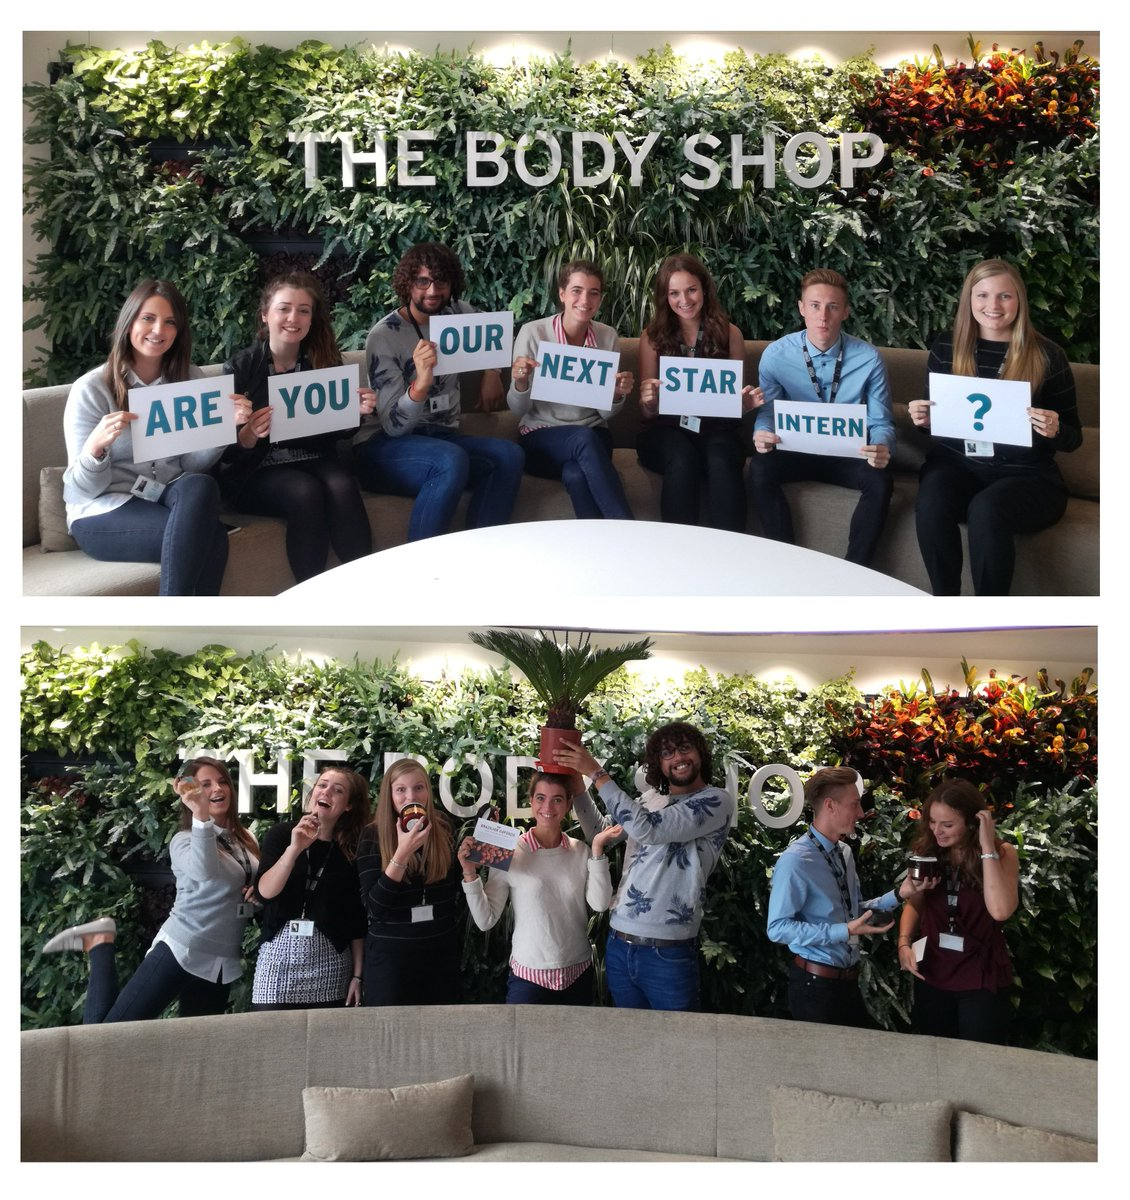 The Body Shop Jobs on Twitter: